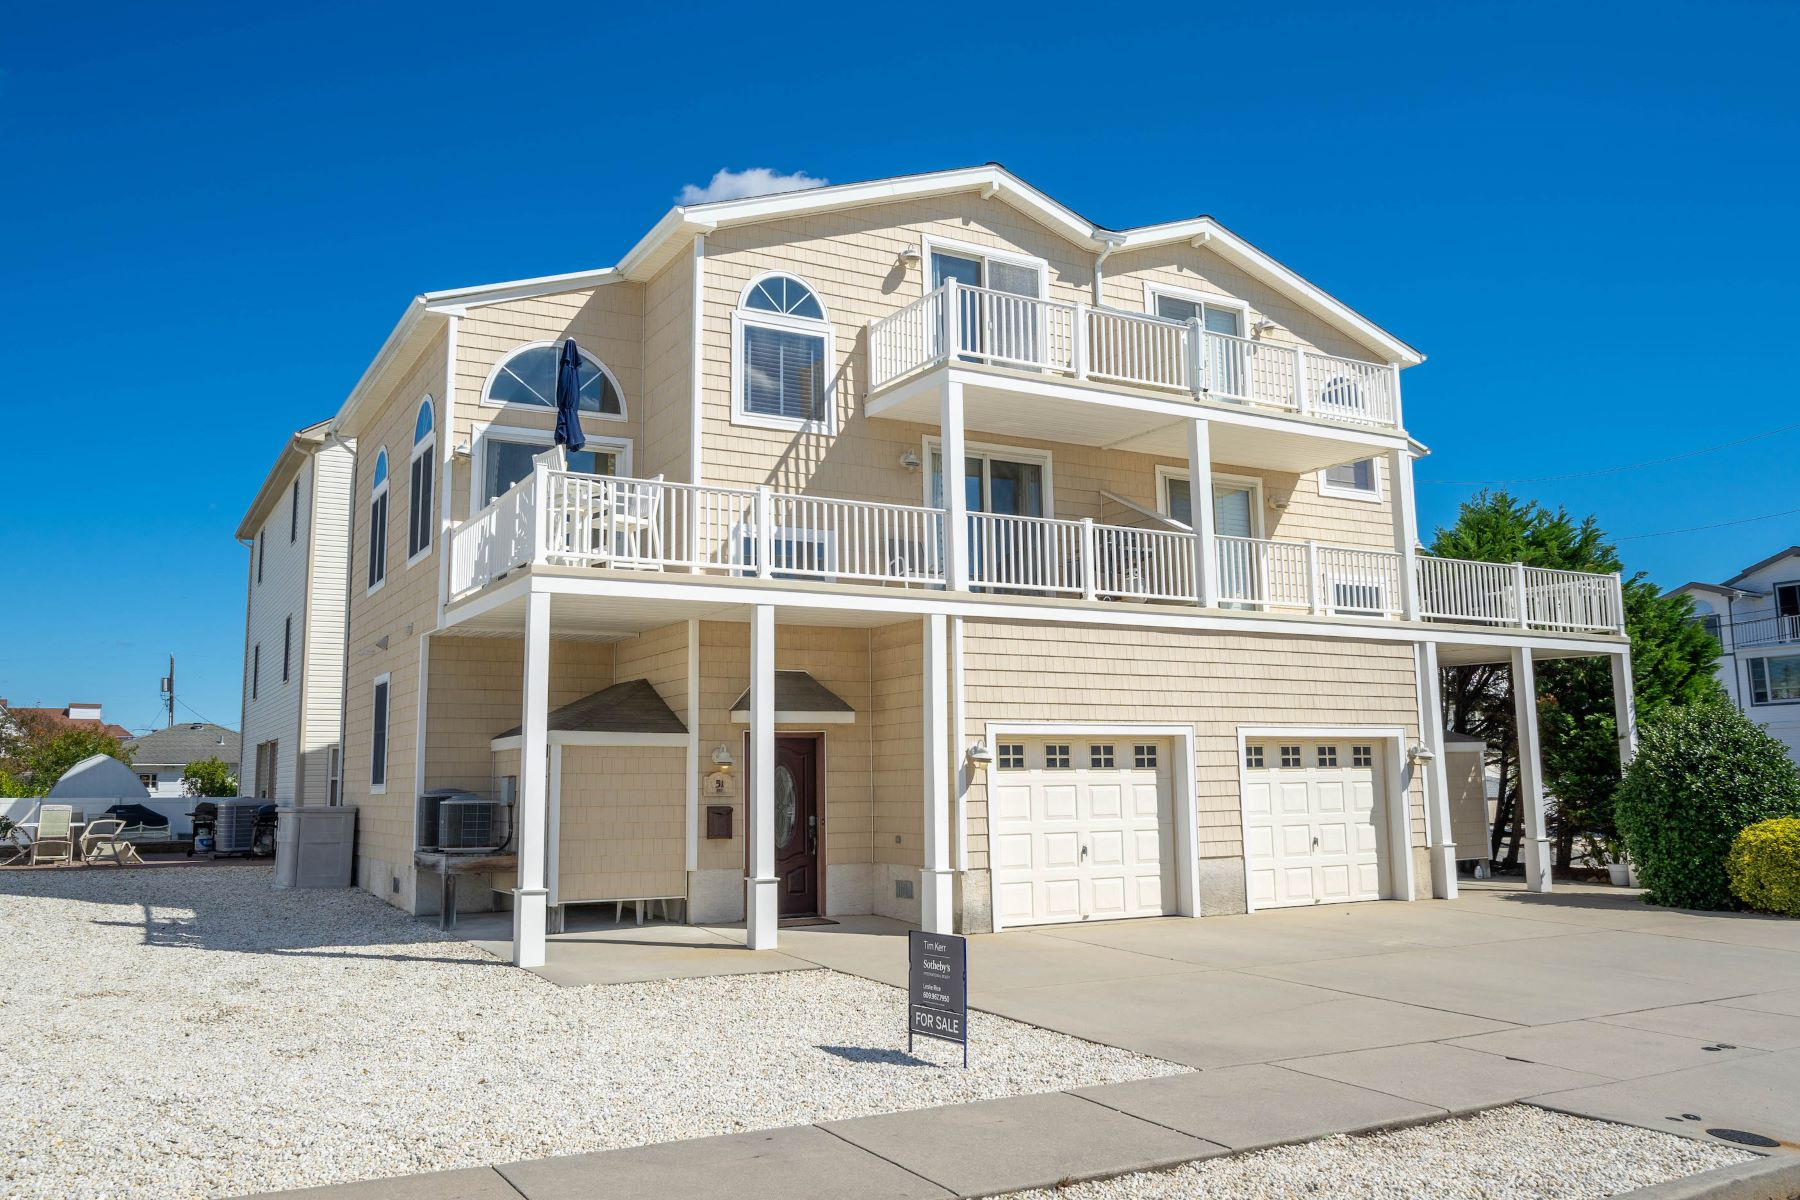 townhouses for Active at Sea Isle City Townhome 51 83rd Street West Unit Sea Isle City, New Jersey 08243 United States